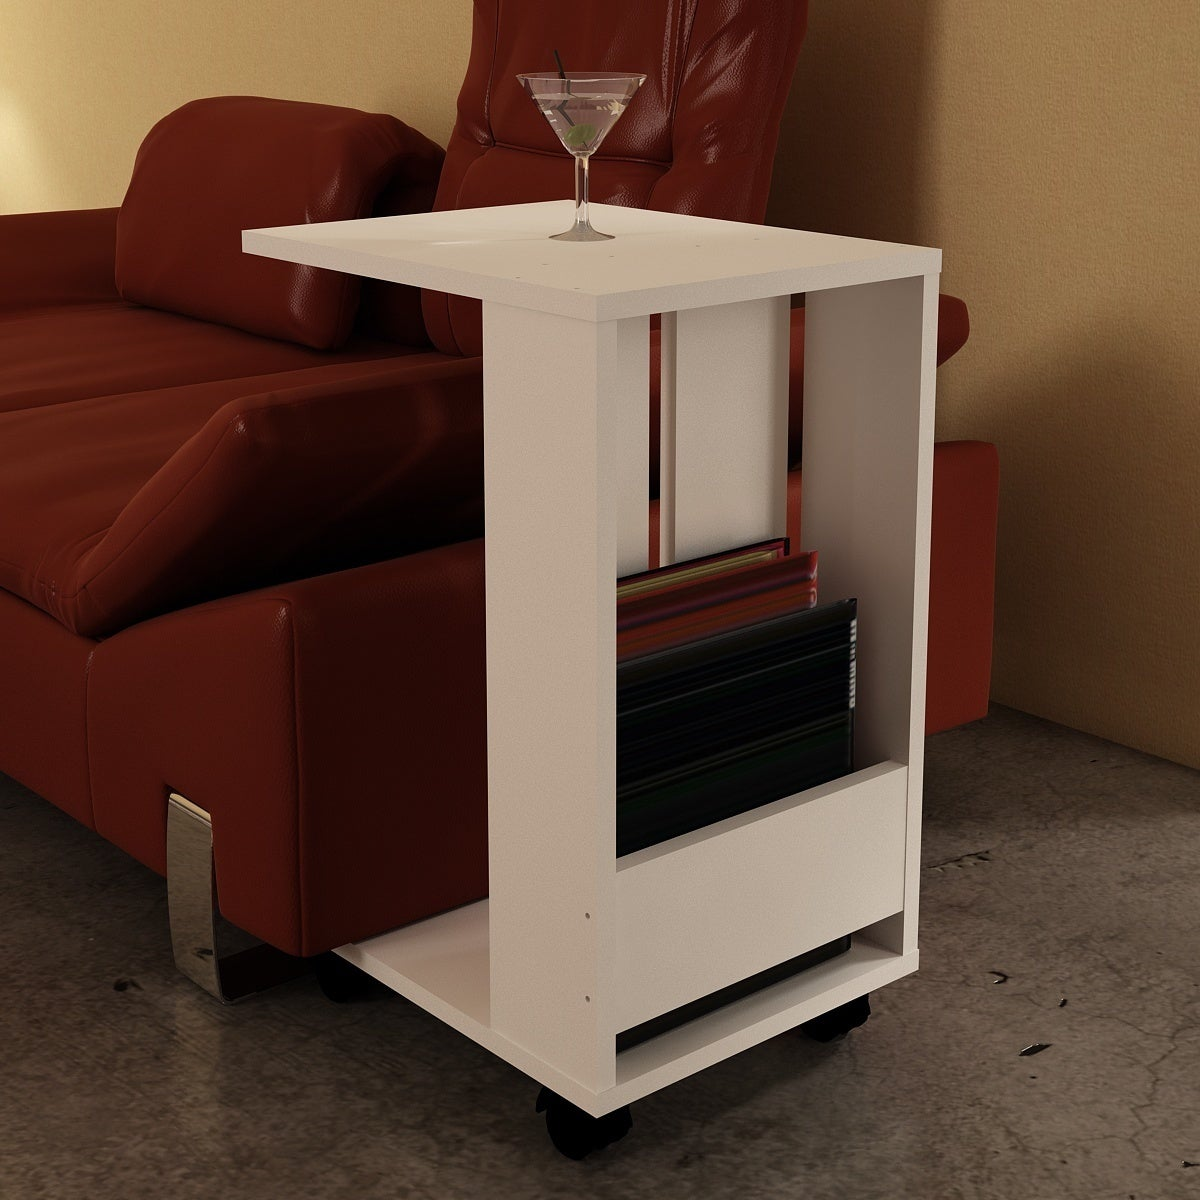 Sheldon White Wood Modern Minimalist Side Table (26 In.)   Free Shipping  Today   Overstock   21568926